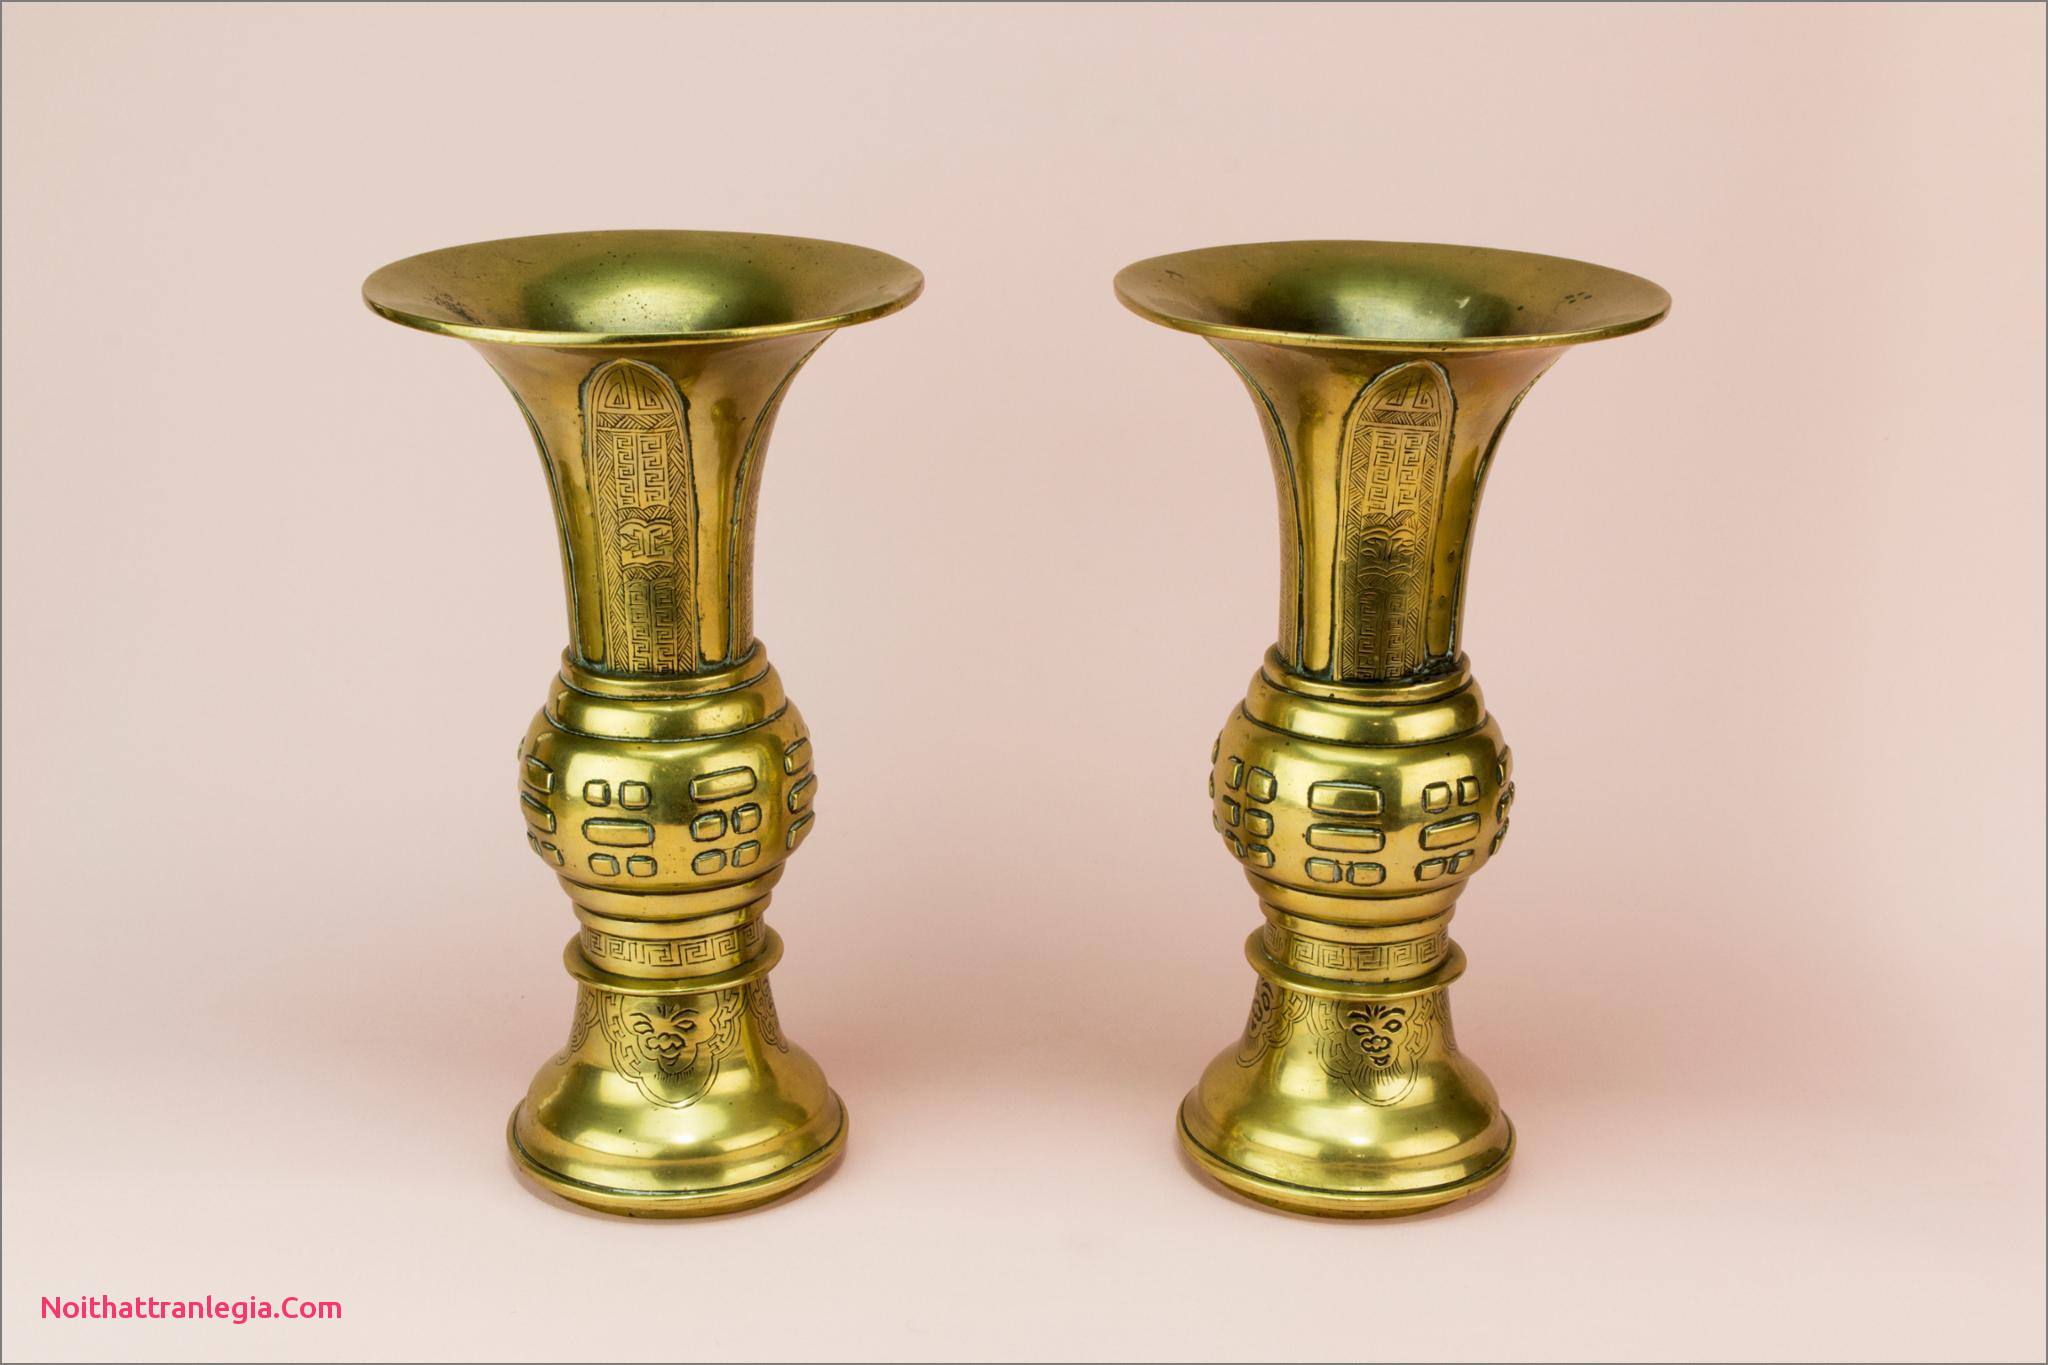 asian vases for sale of 20 chinese antique vase noithattranlegia vases design pertaining to 2 gu shaped brass vases chinese 19th century